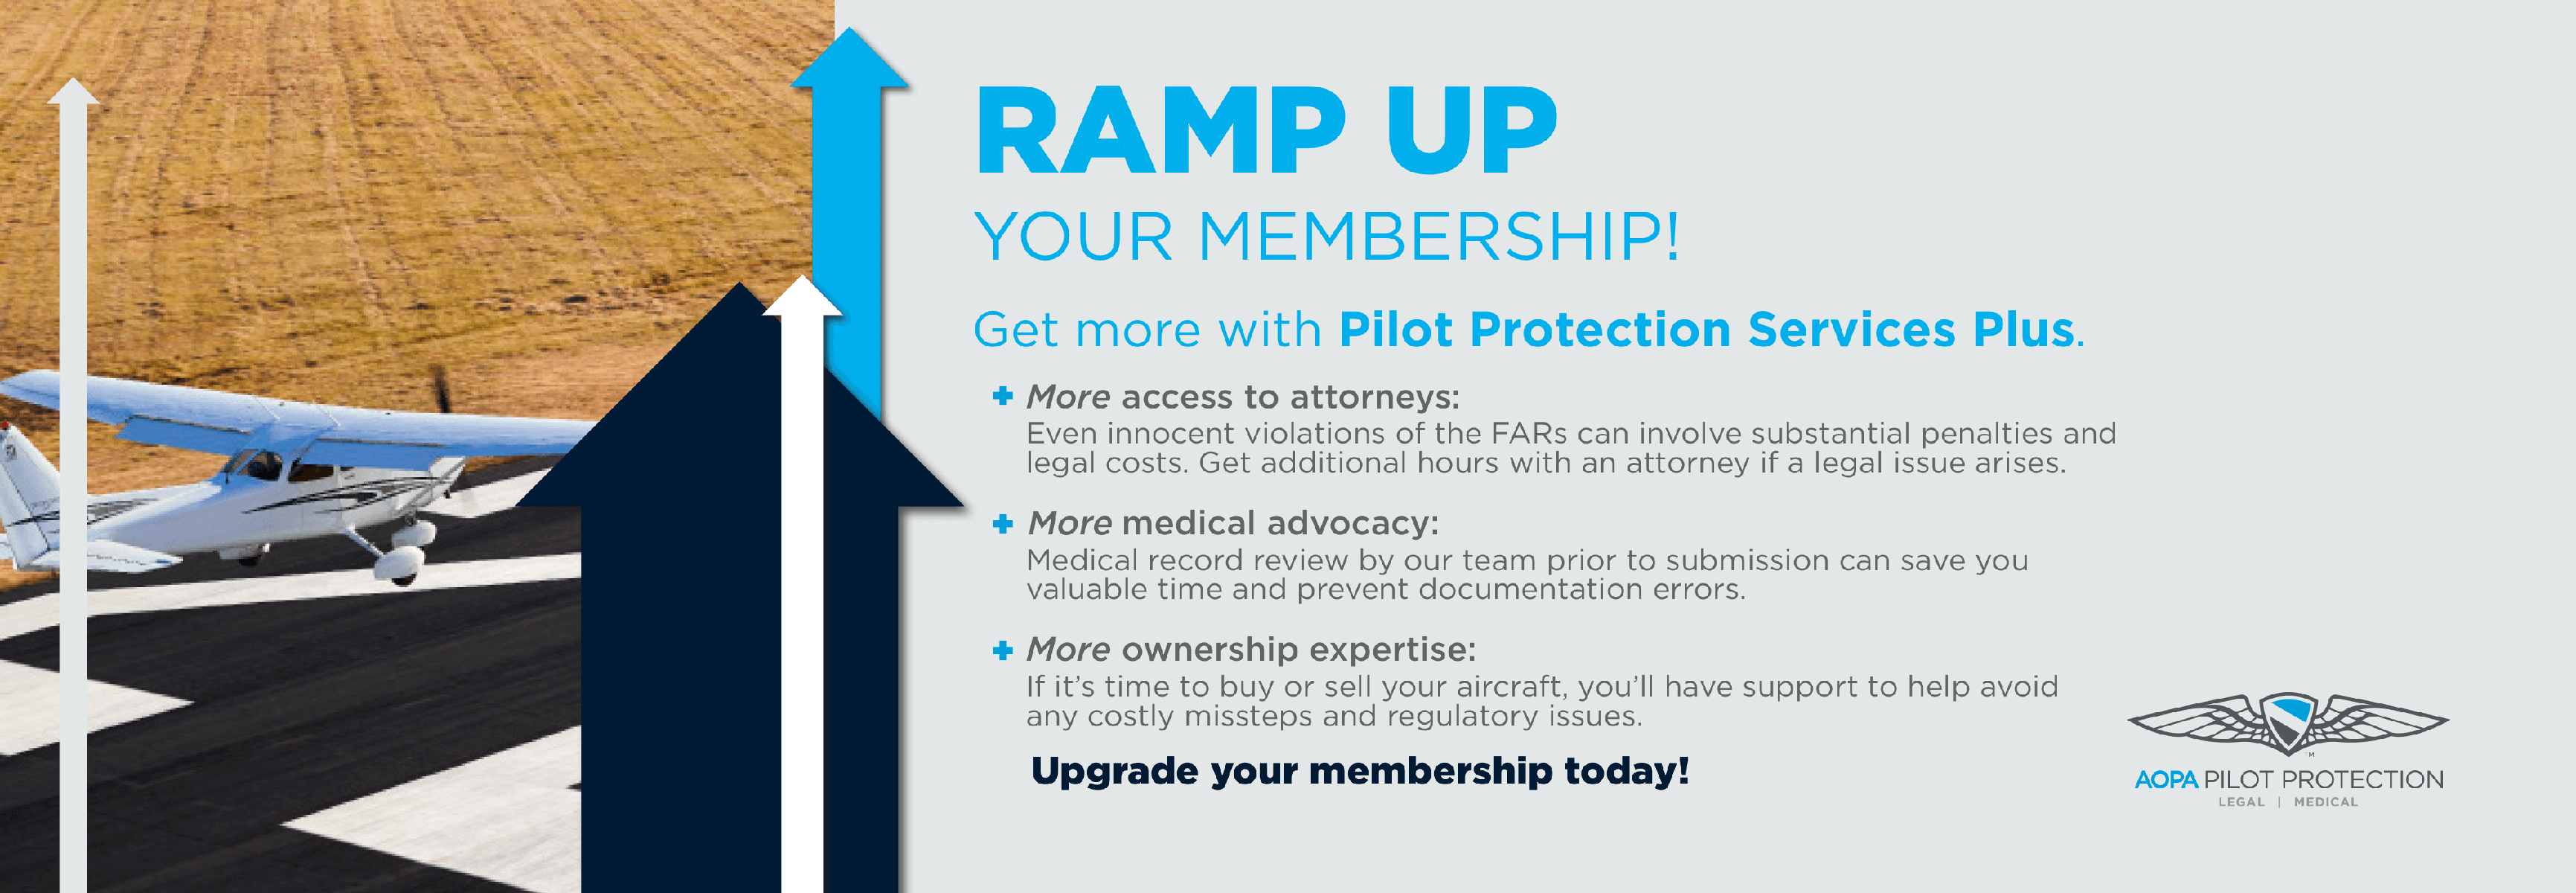 Ramp Up Your Membership - Pilot Protection Services